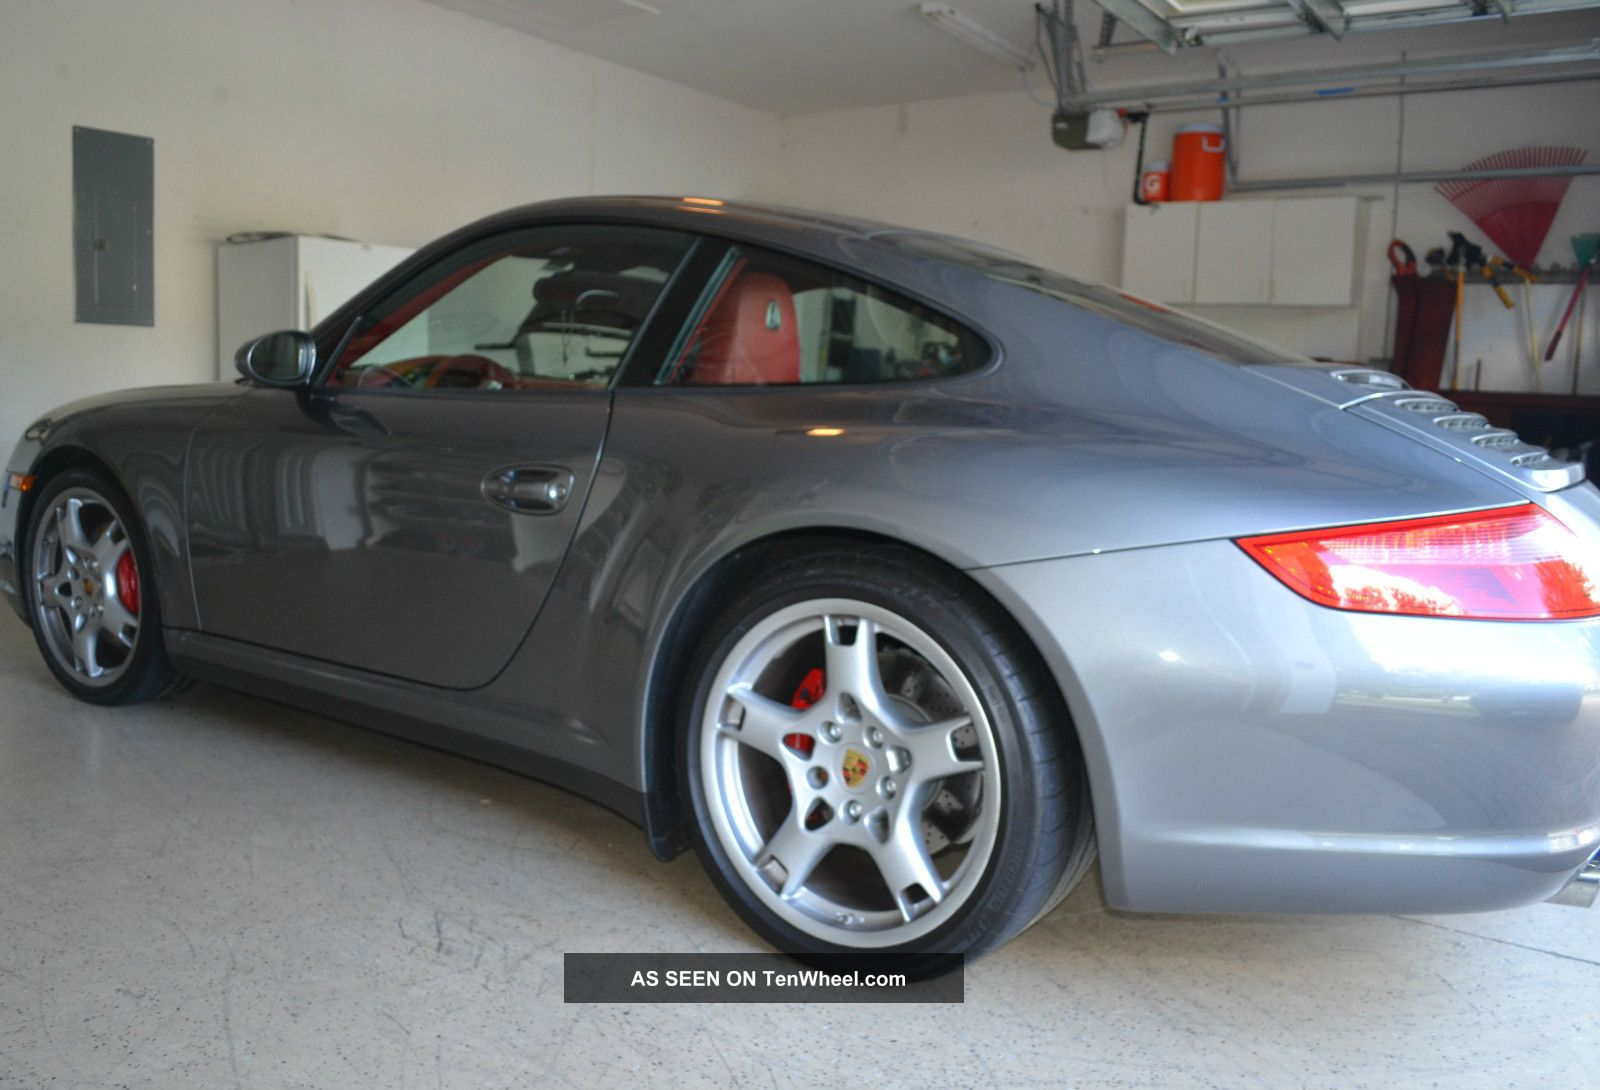 Watch moreover 29723 2008 porsche 911 carrera 4s also Matte Blue Mercedes Vmb5 Gun Metal besides 29861 2008 ford mustang gt coupe 2   door 4   6l in addition 432241 2012 Ml350 Black Sports Interior Pic S. on 2013 mercedes benz cl550